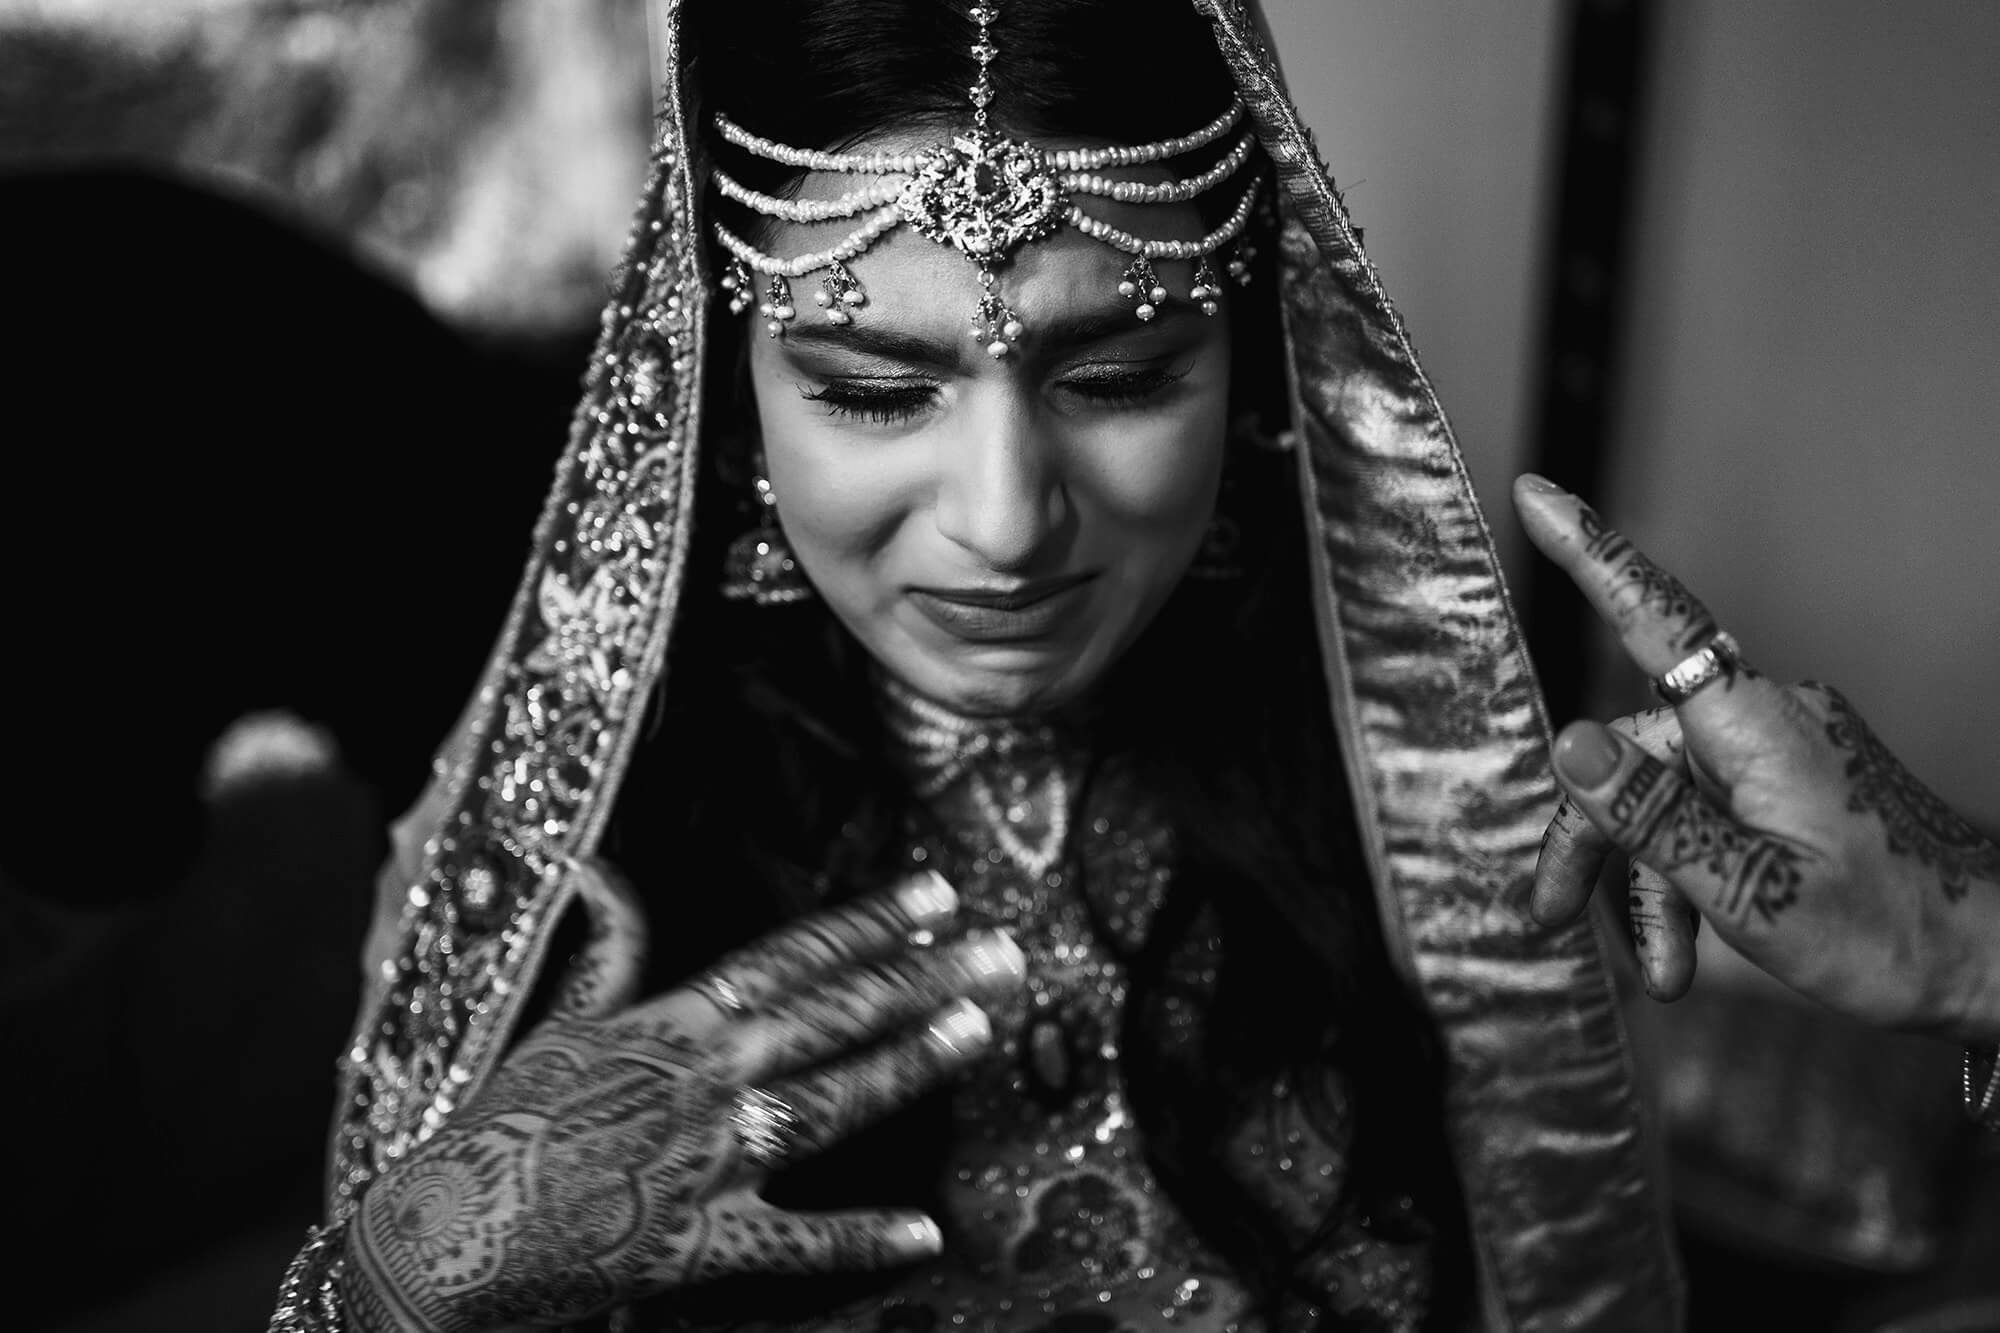 Emotional Bride At Asian Wedding